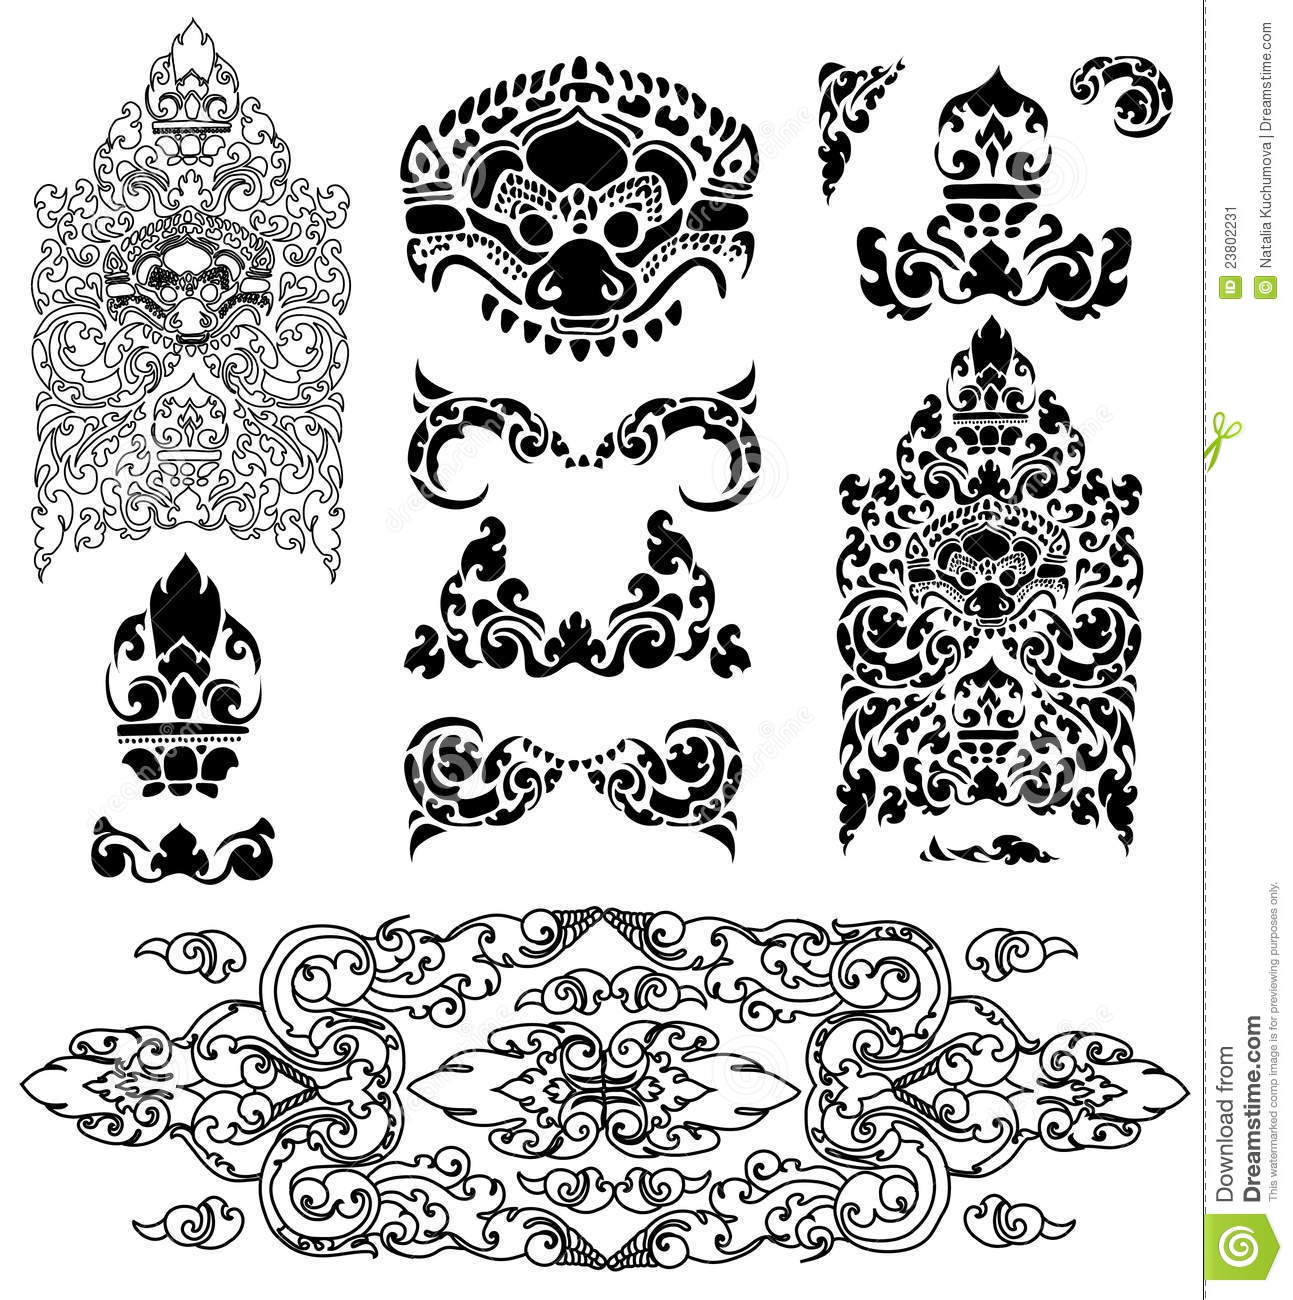 Khmer Design Pictures To Pin